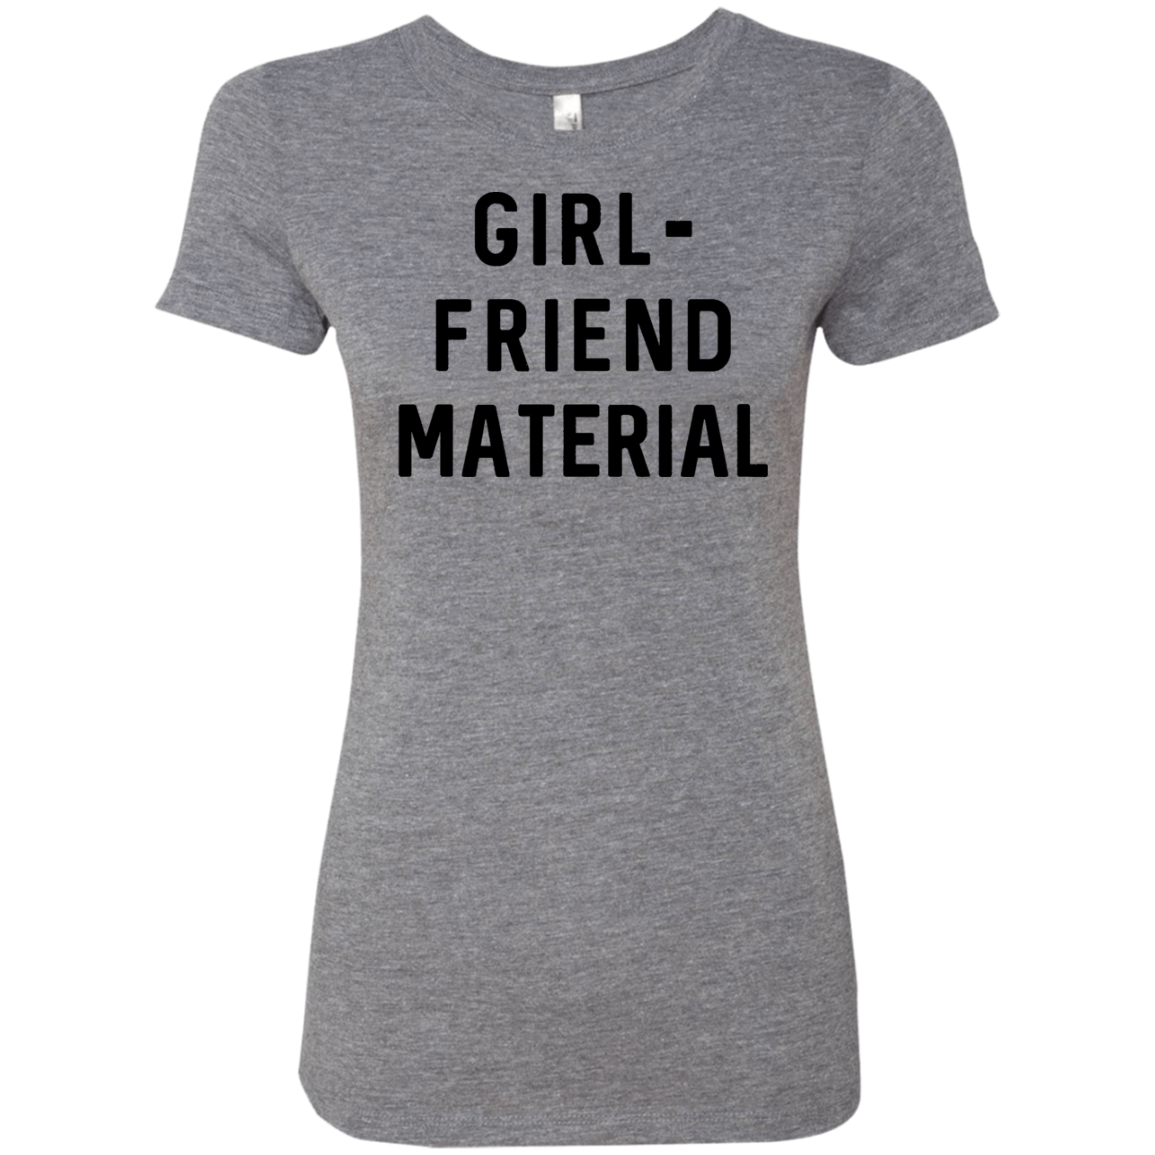 GIRL-FRIEND MATERIAL Women's Classic Tee